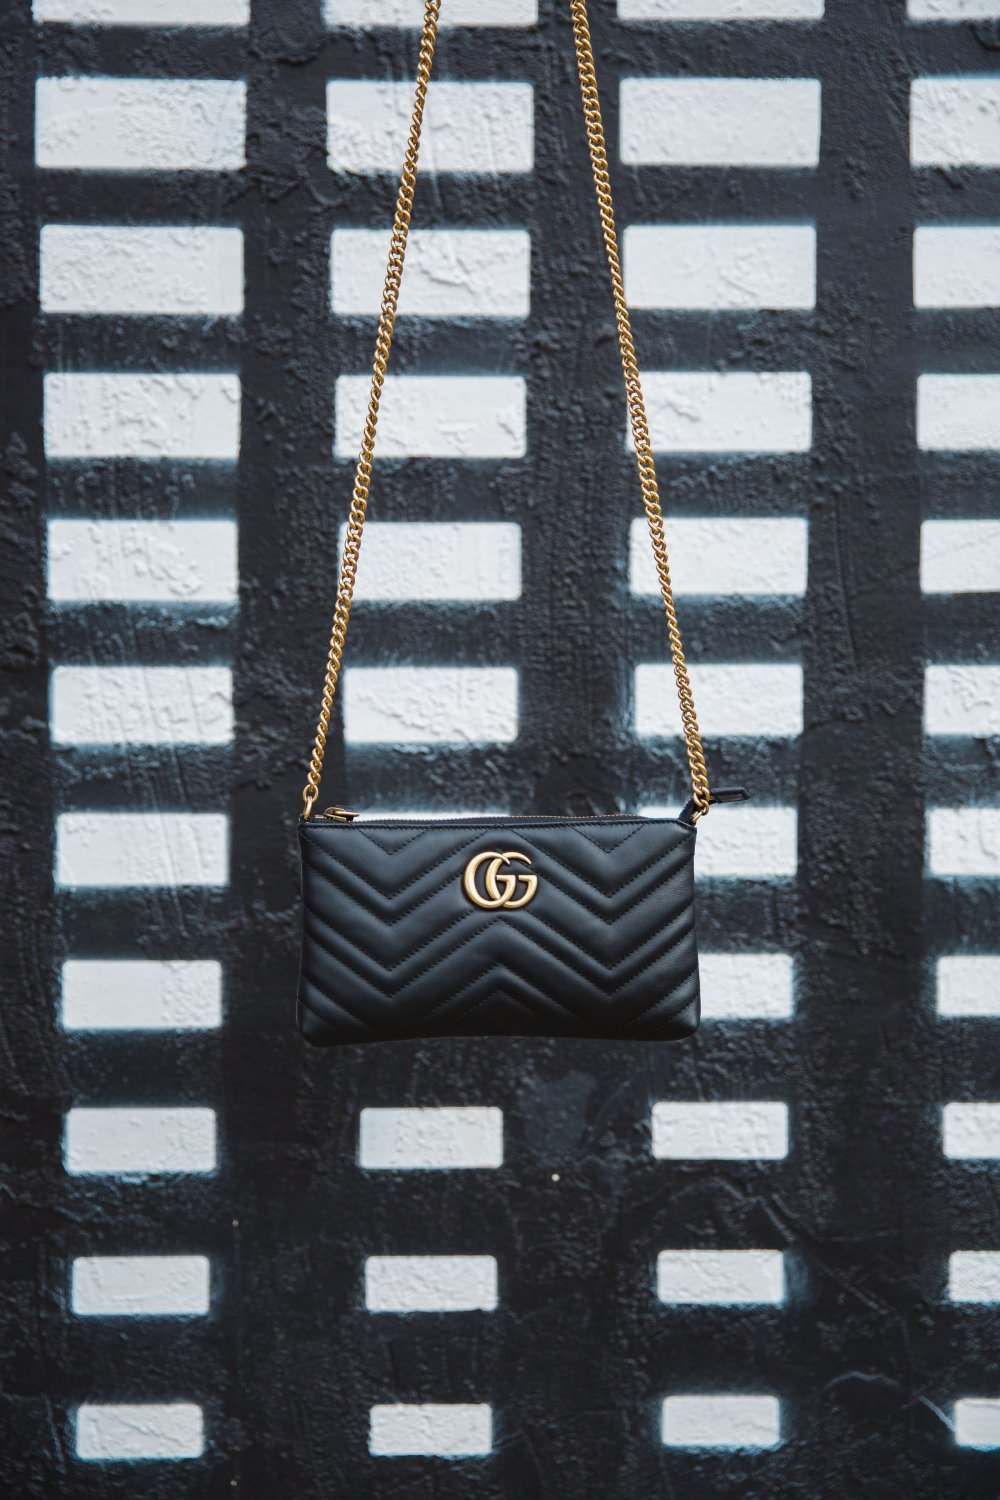 The perfect black GG cross body purse is the best accessory for all your outfits!